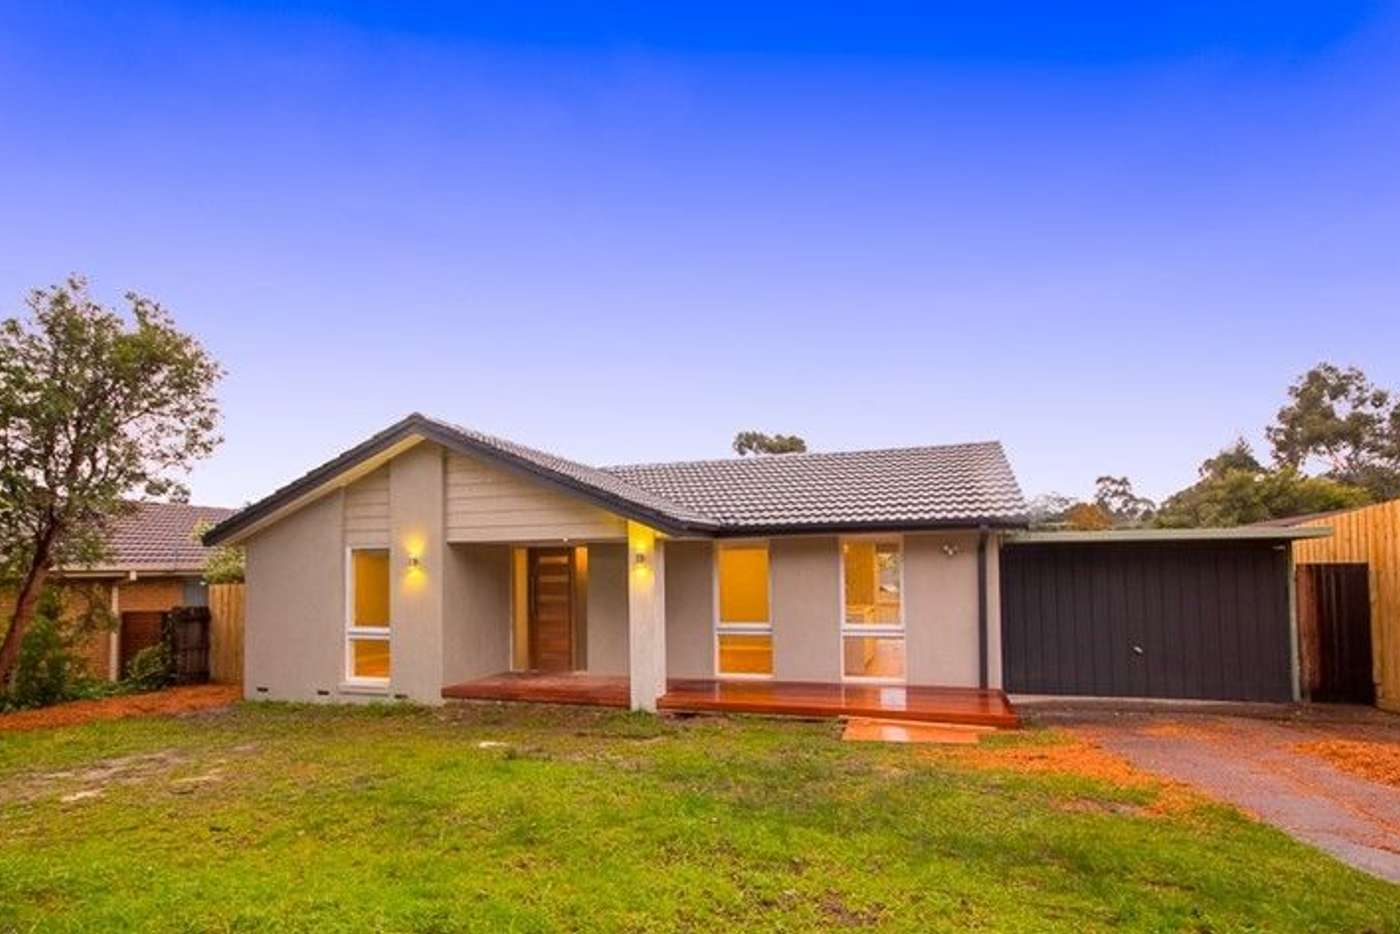 Main view of Homely house listing, 64 Chartwell Drive, Wantirna VIC 3152